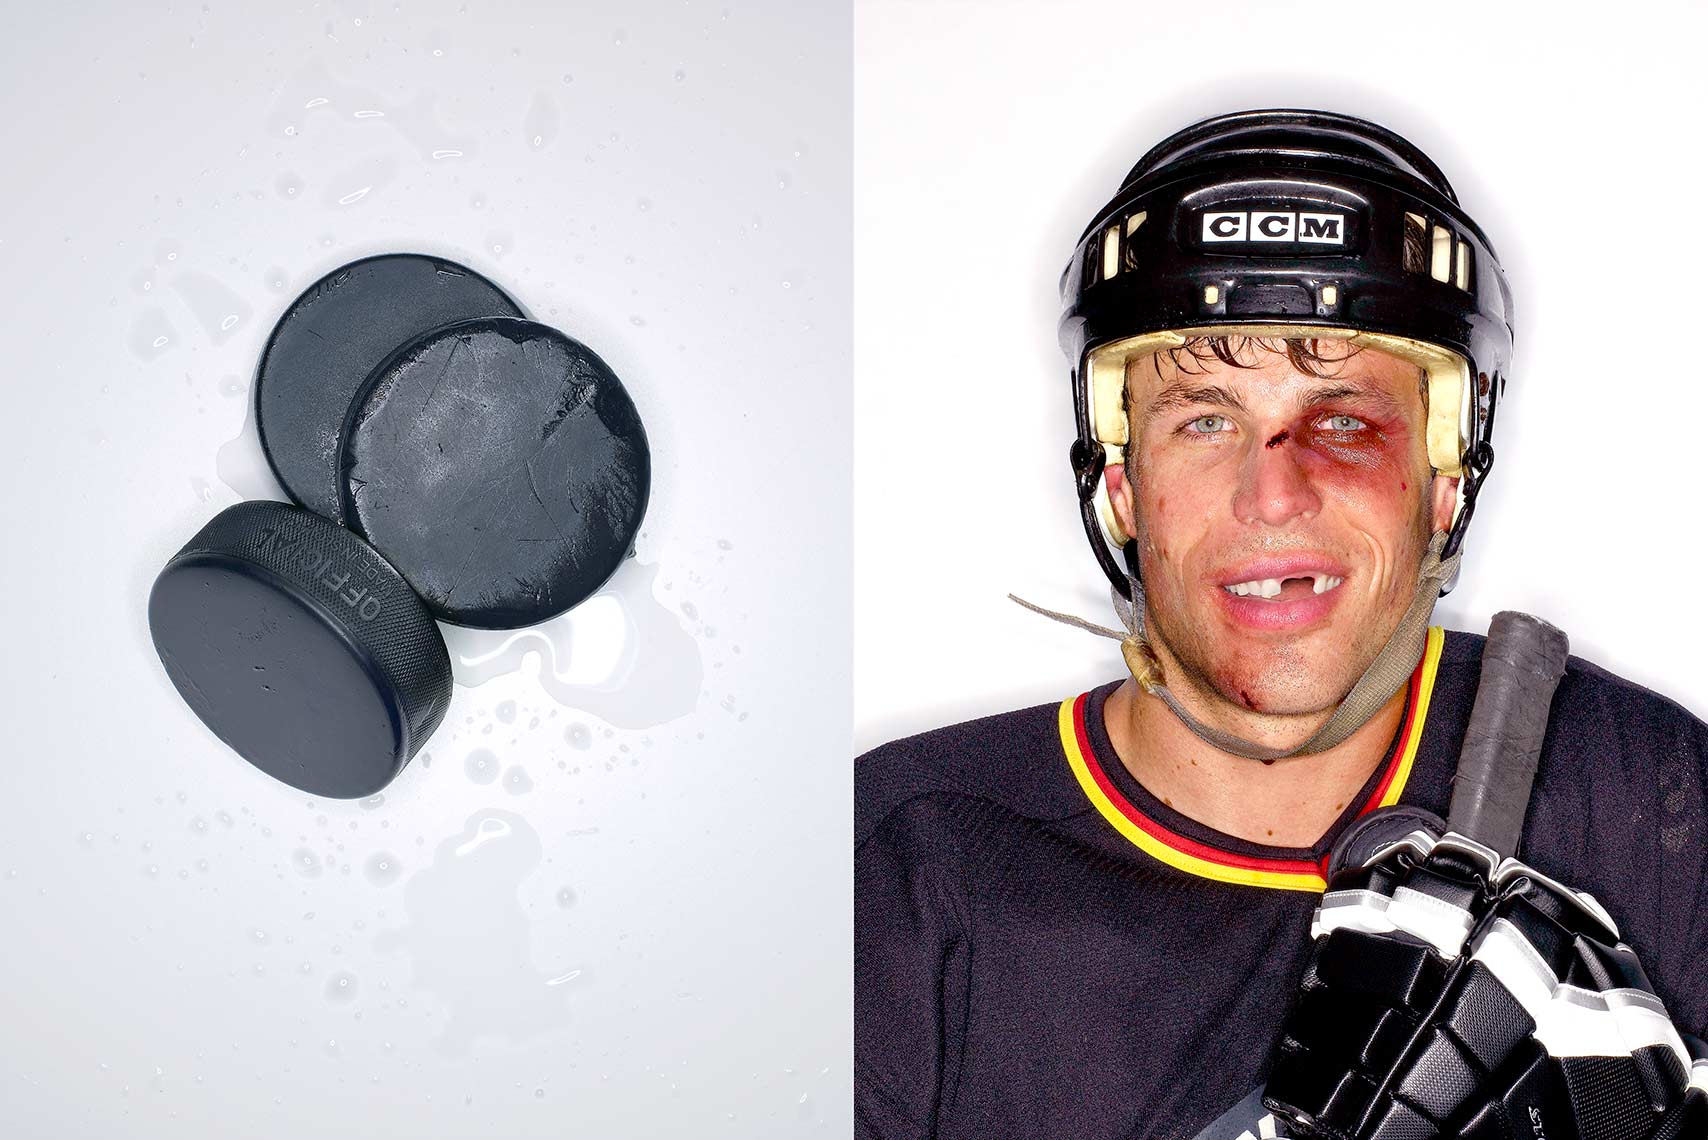 Hockey_Diptych3_W4_RESIZED_FOR_WEB